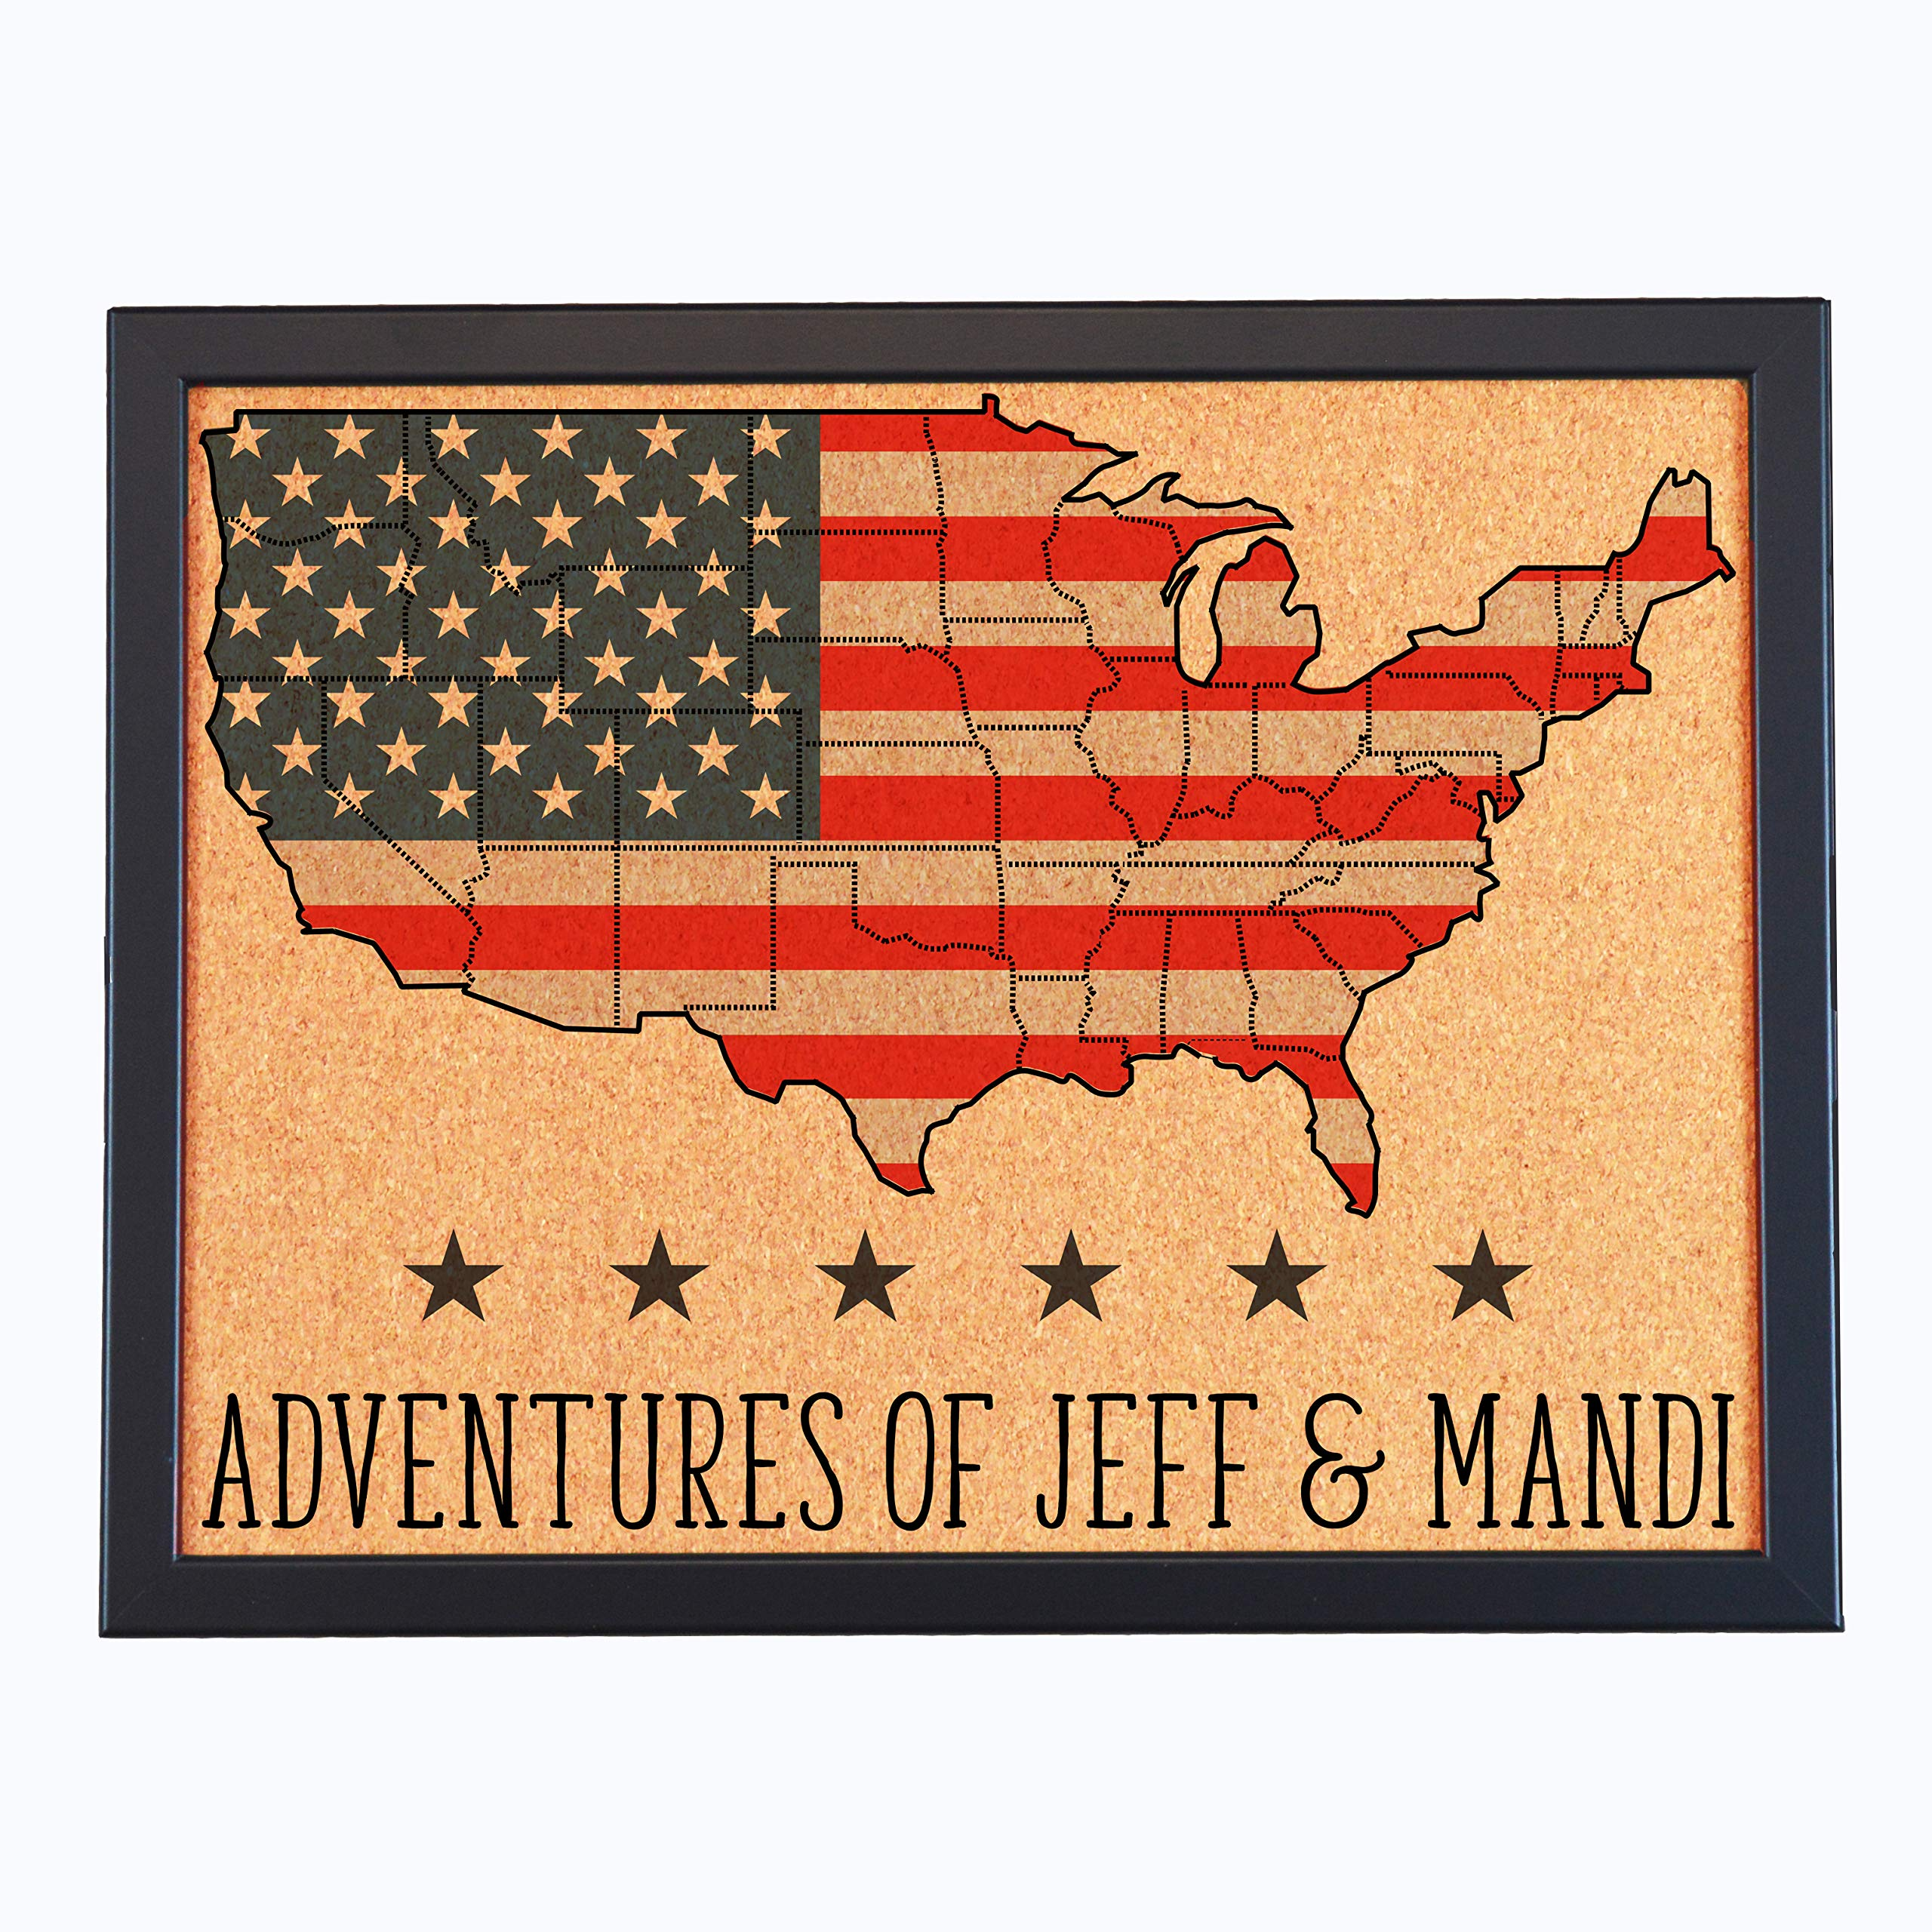 Lindsey Lou Patterns Custom Cork Board Map of Continental US, American Flag by Lindsey Lou Patterns